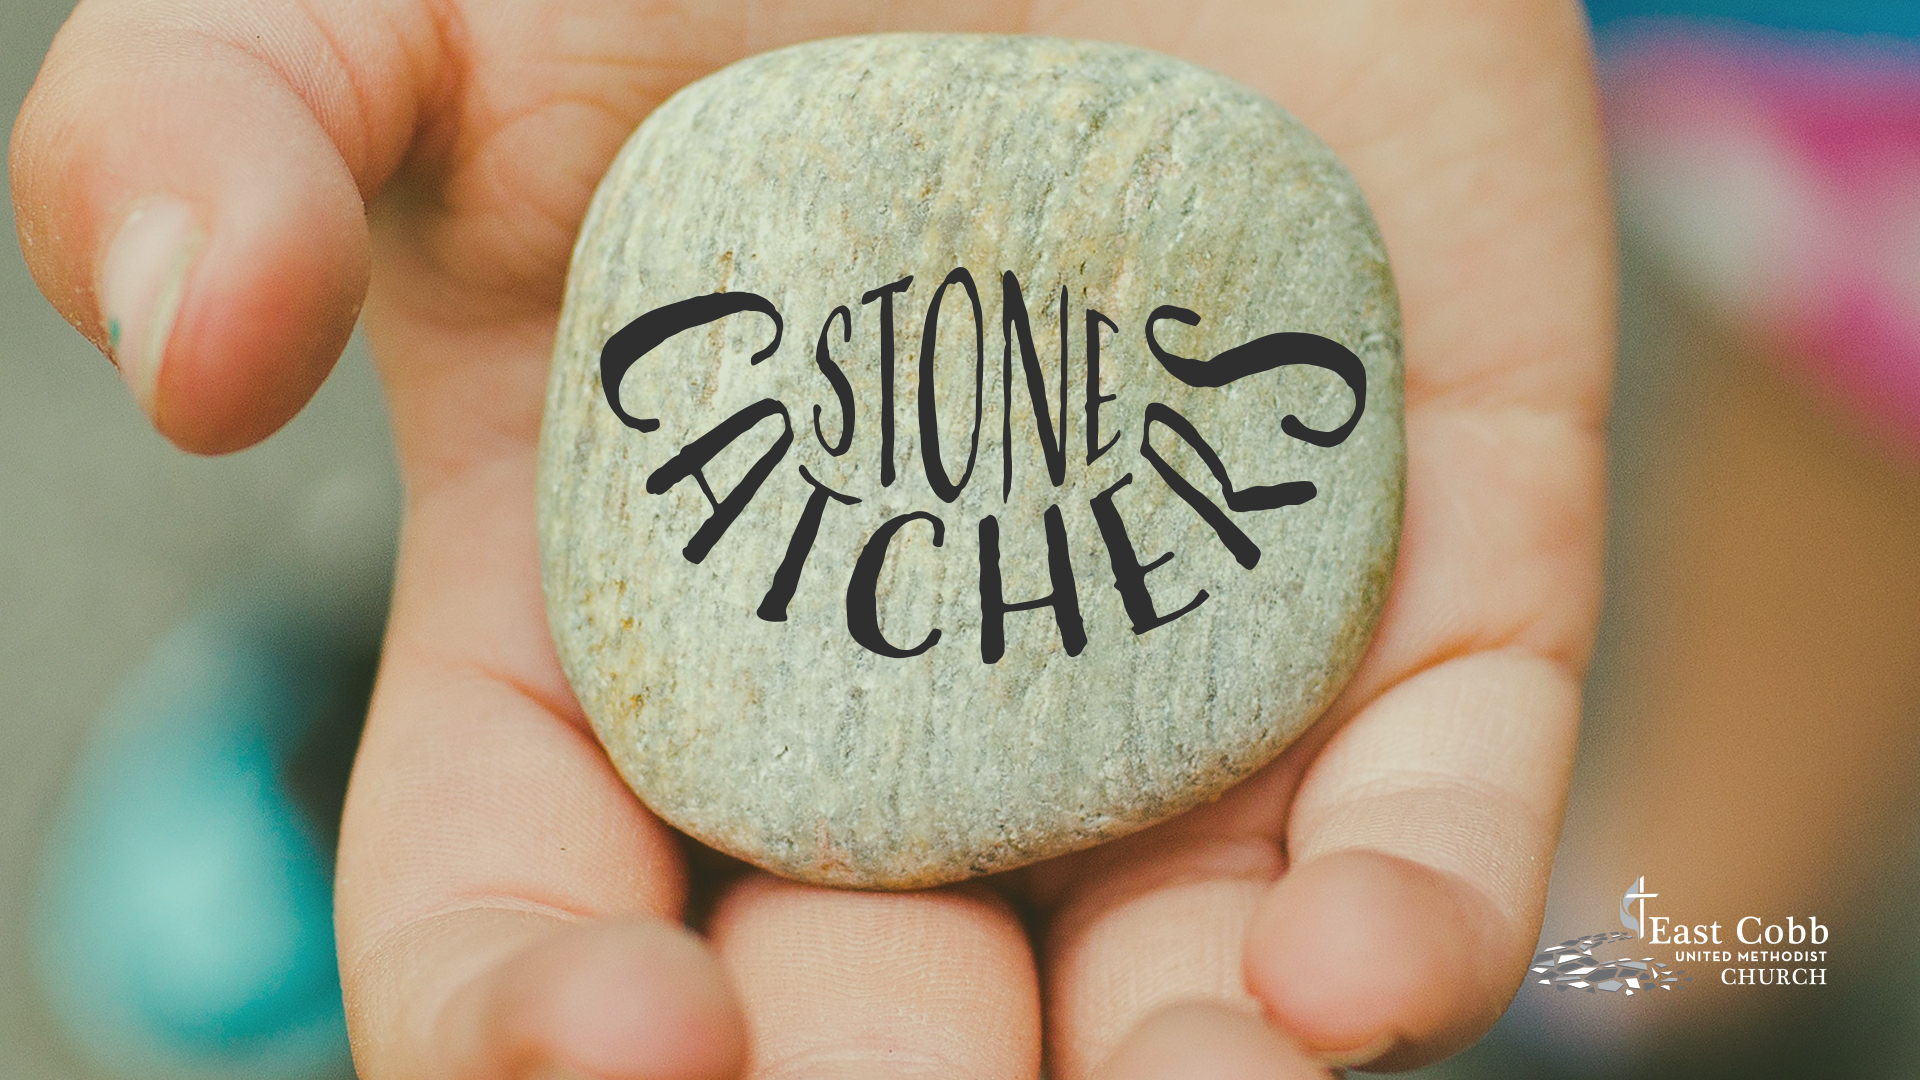 stone-catchers.jpg